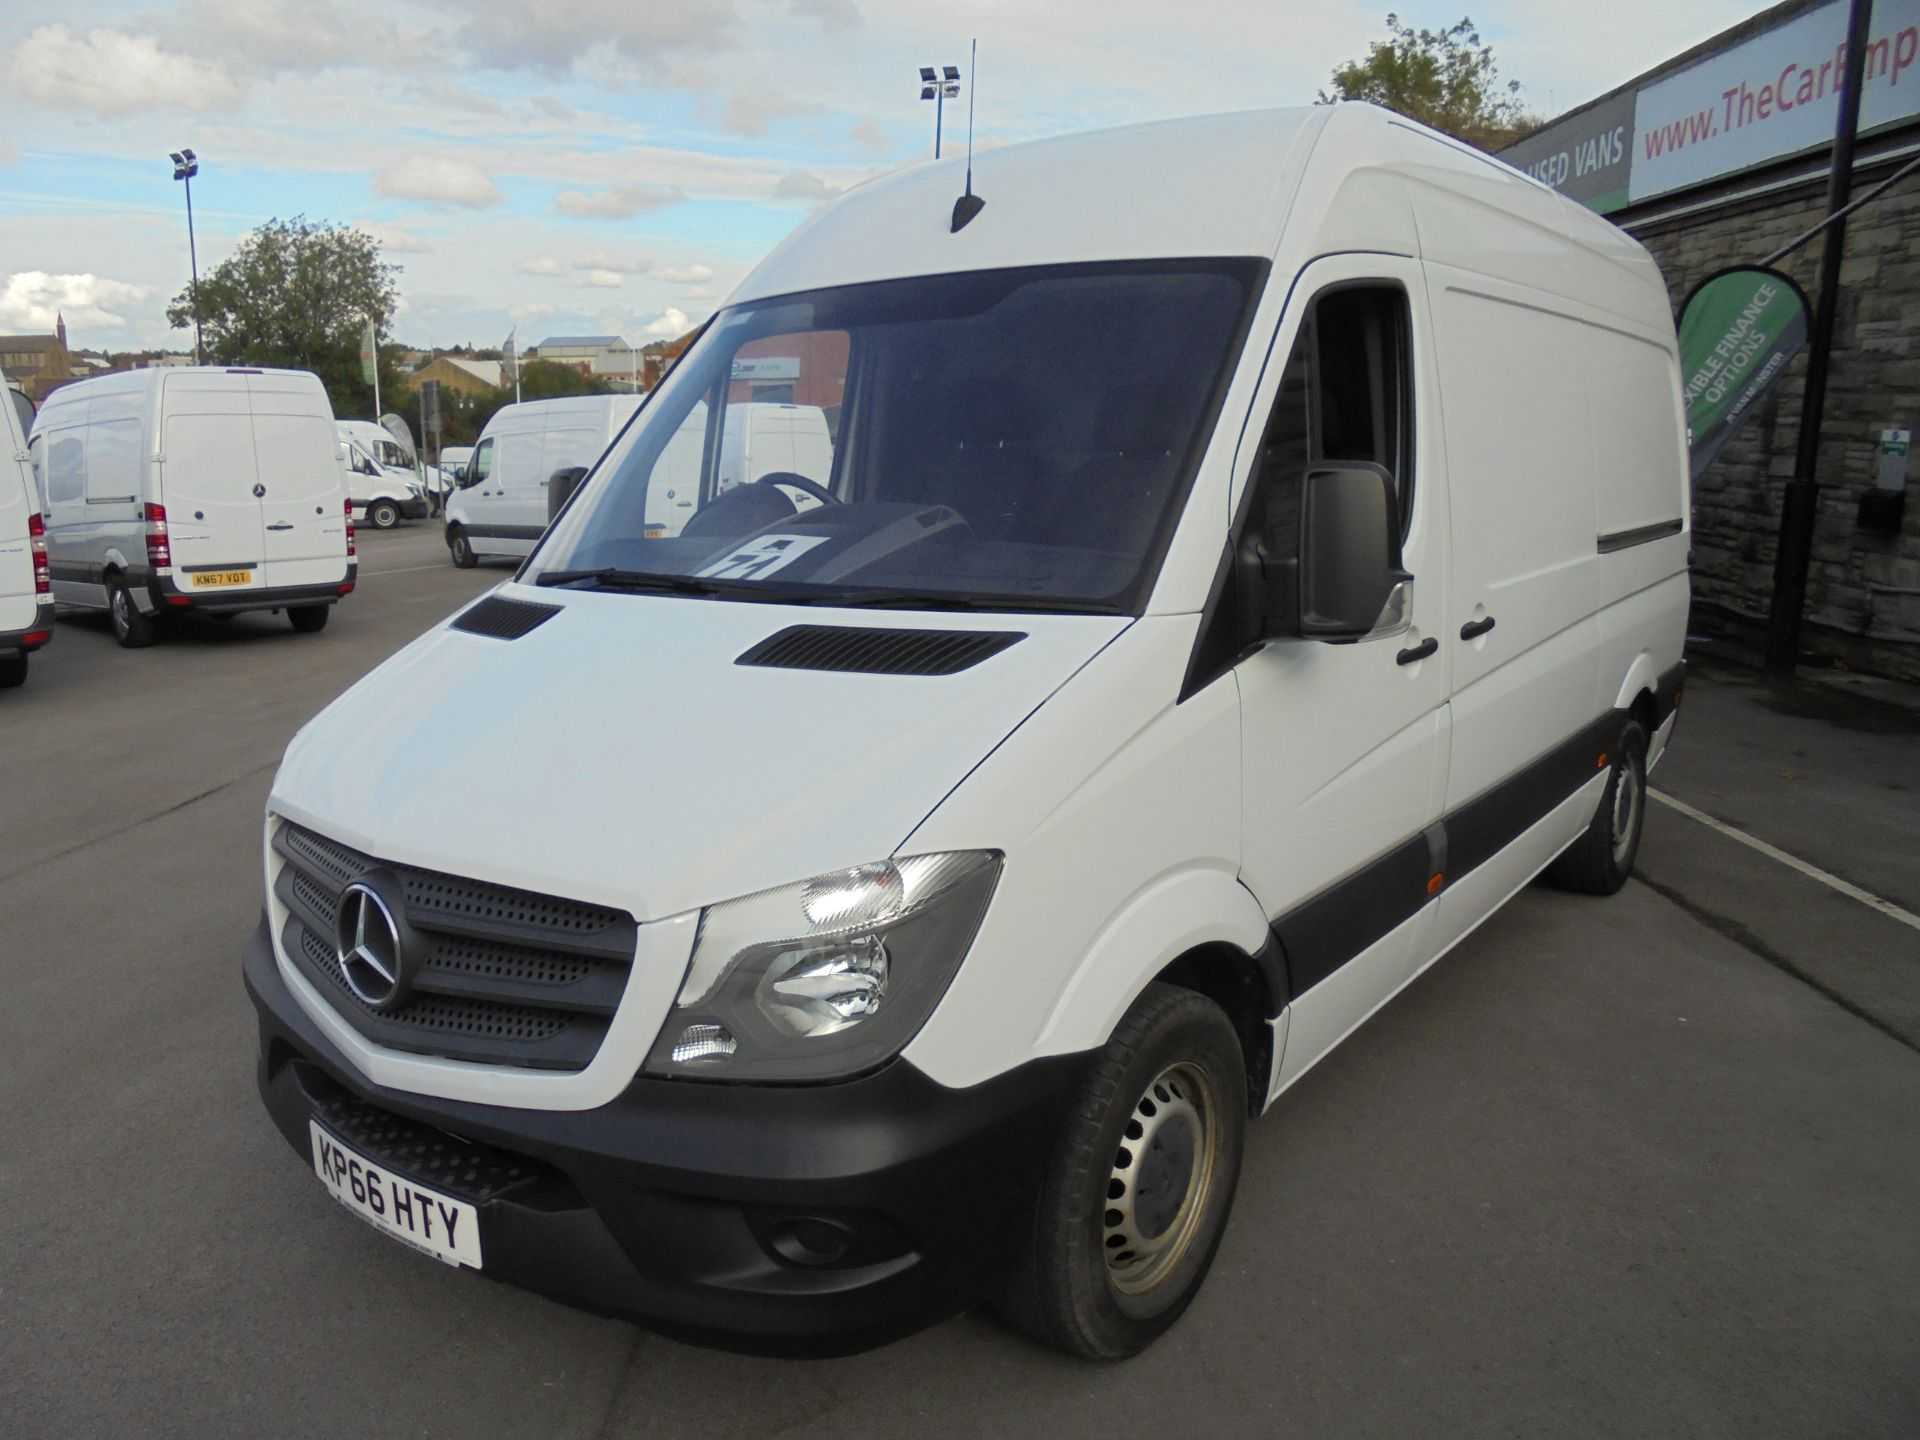 2016 Mercedes-Benz Sprinter 3.5T High Roof Van MWB (KP66HTY) Thumbnail 3